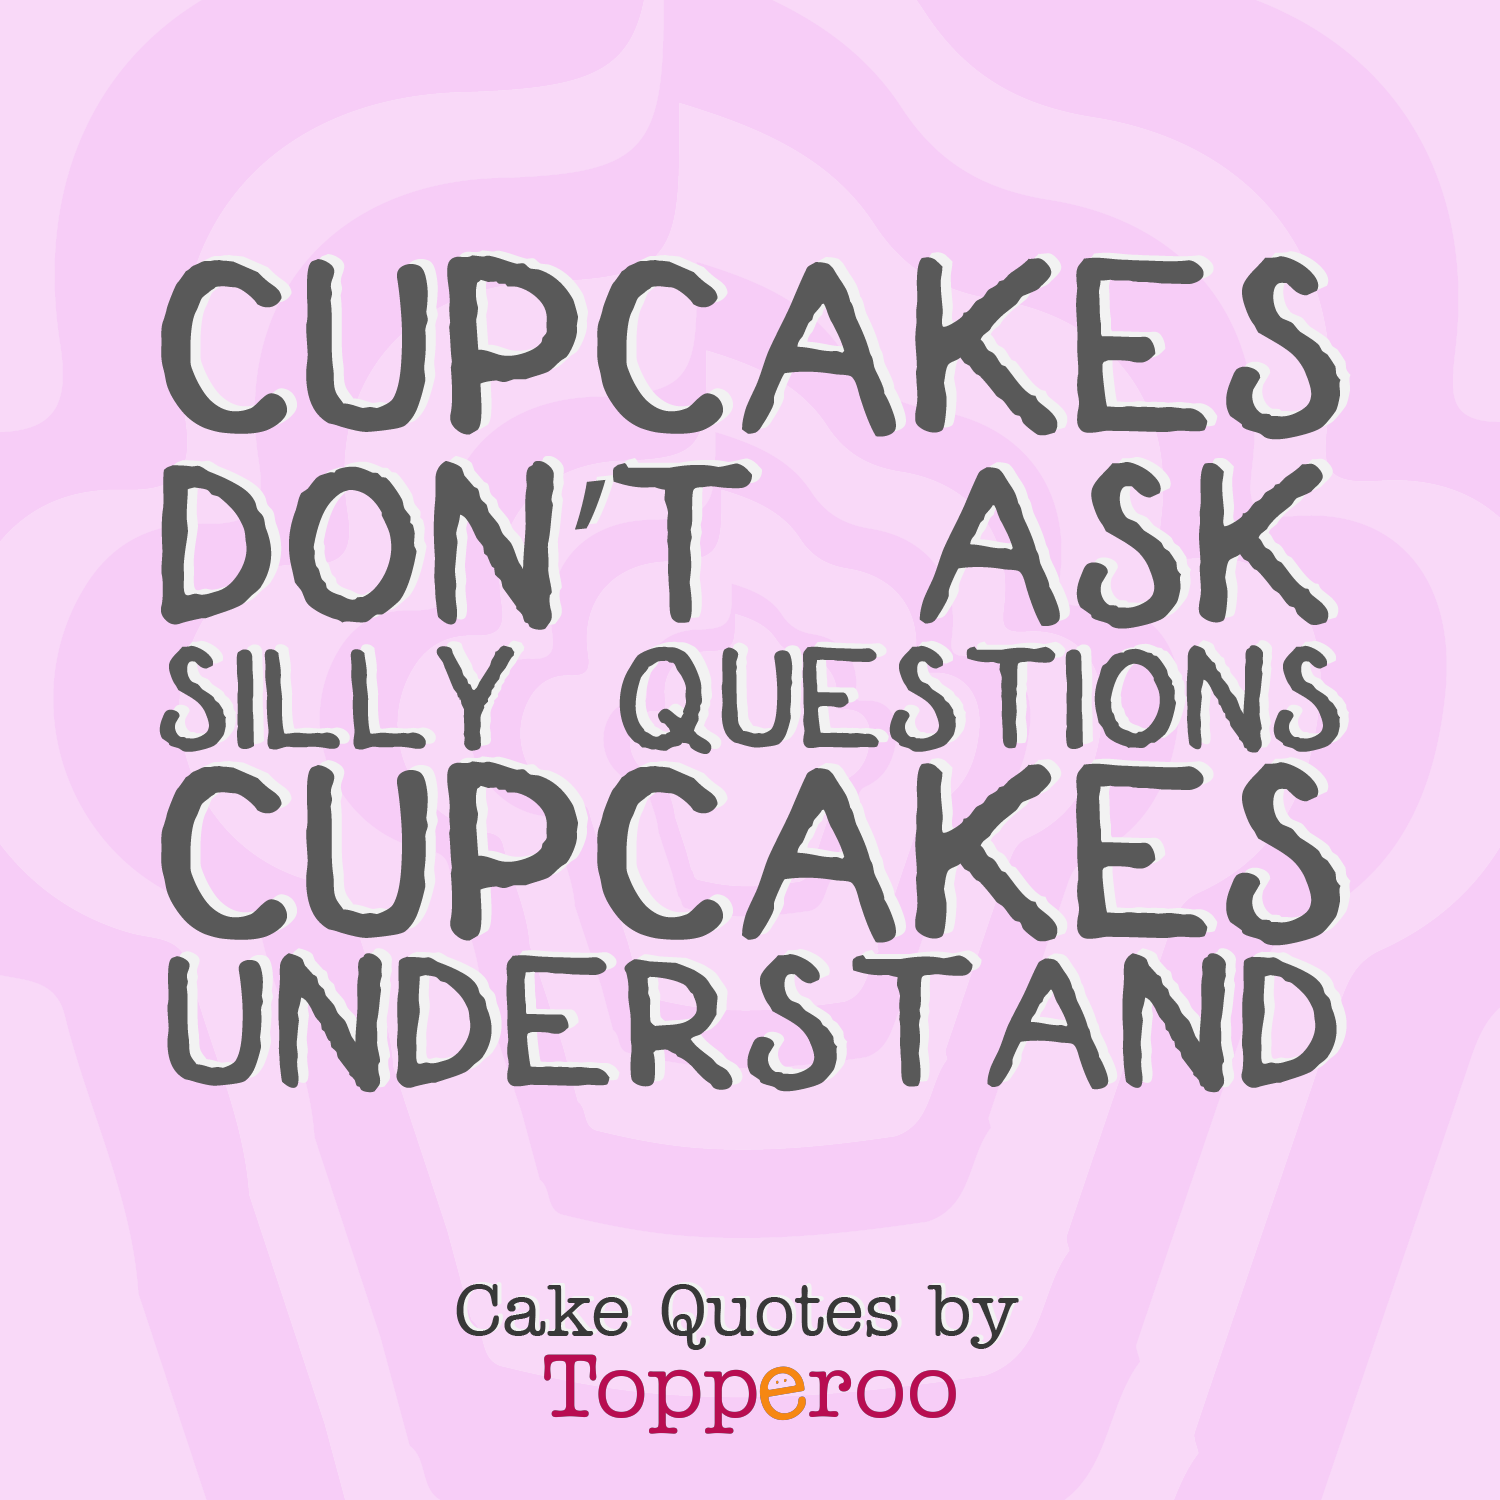 cupcakes-dont-ask-silly-questions-cupcakes-understand